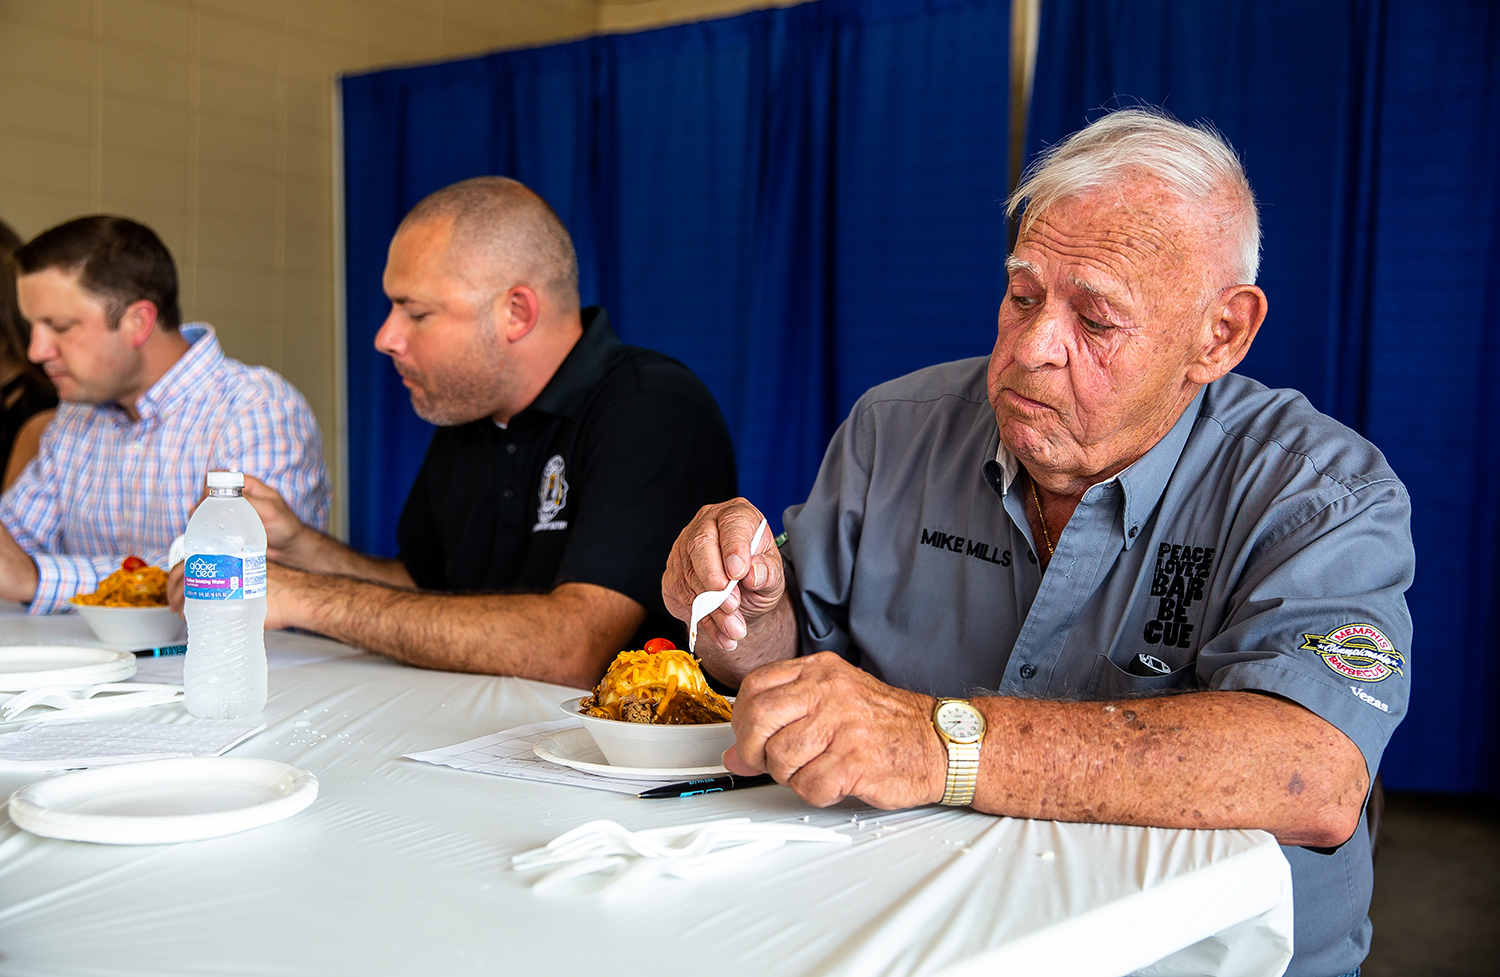 Judge Mike Mills, of 17th Street BBQ, is impressed by the hot beef sundae from Ken Haarstad with Classic Kitchen out of Austin, Minn., while judging the savory category for the Golden Abe's Fantastic Fair Food competition at the Lincoln Stage on the Illinois State Fairgrounds, Friday, Aug. 10, 2018, in Springfield, Ill. [Justin L. Fowler/The State Journal-Register]